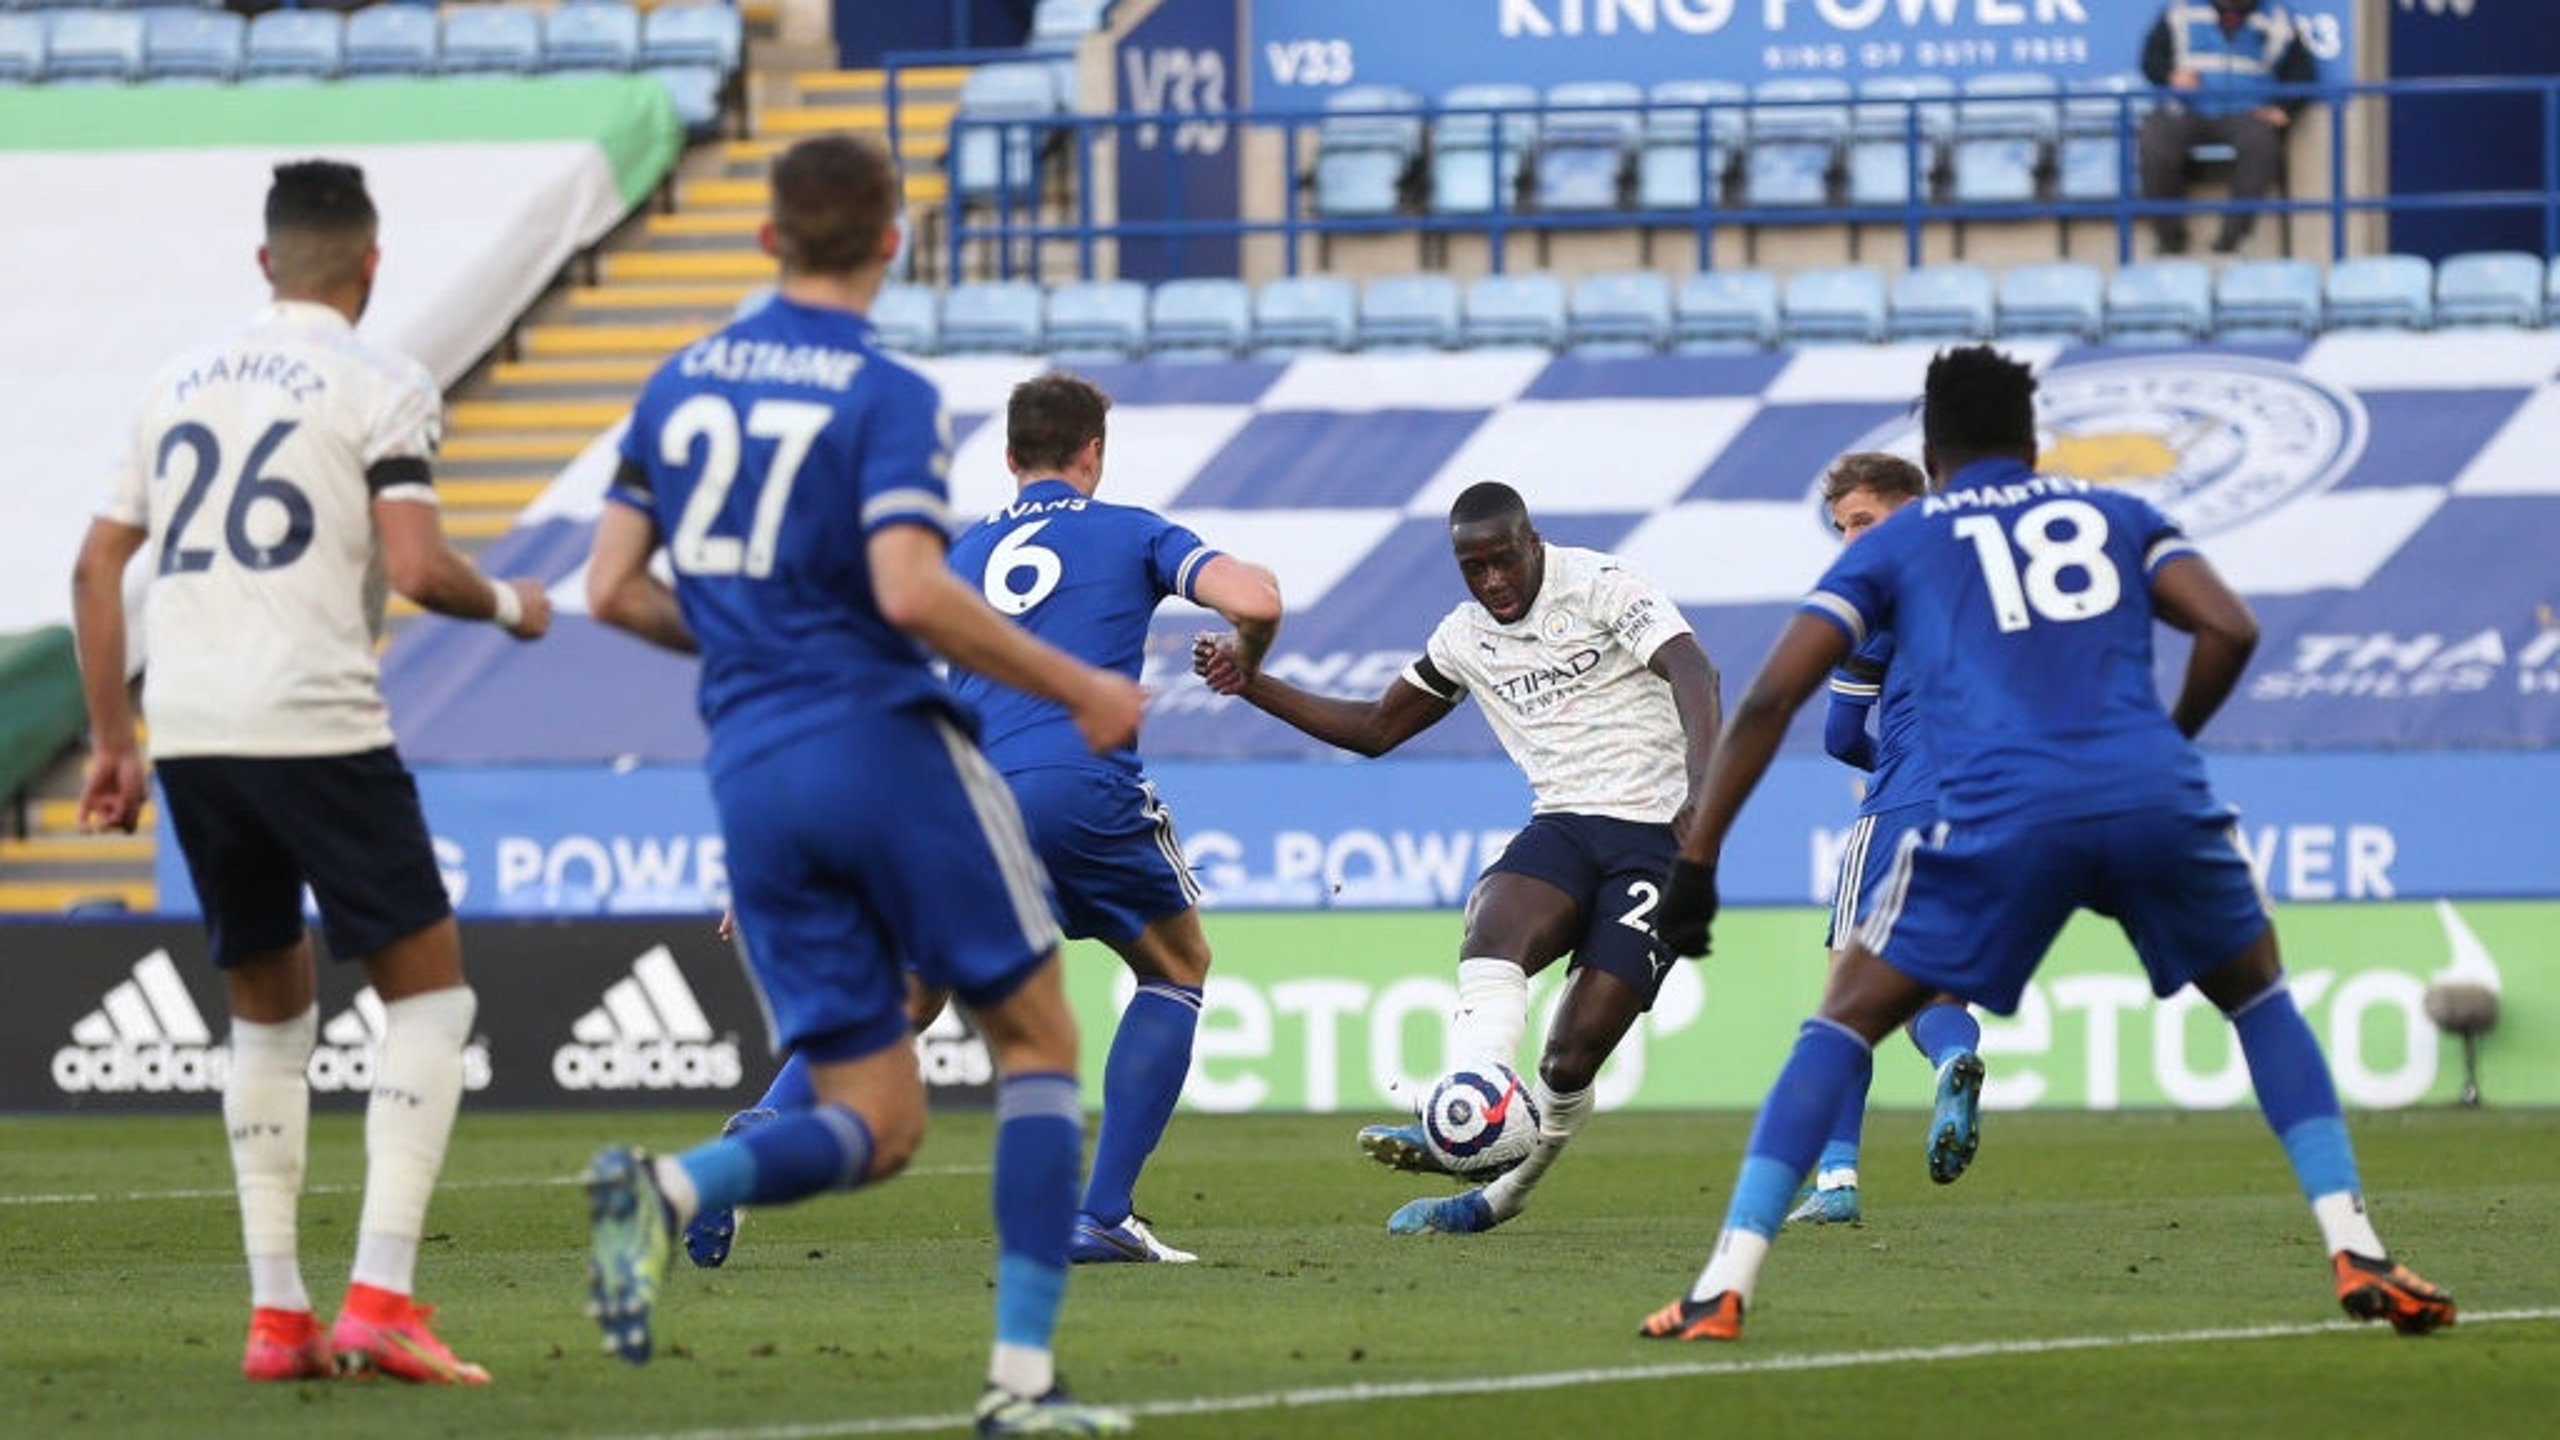 BENDY MENDY: The left-back fabulously curls in the opener just before the hour mark.